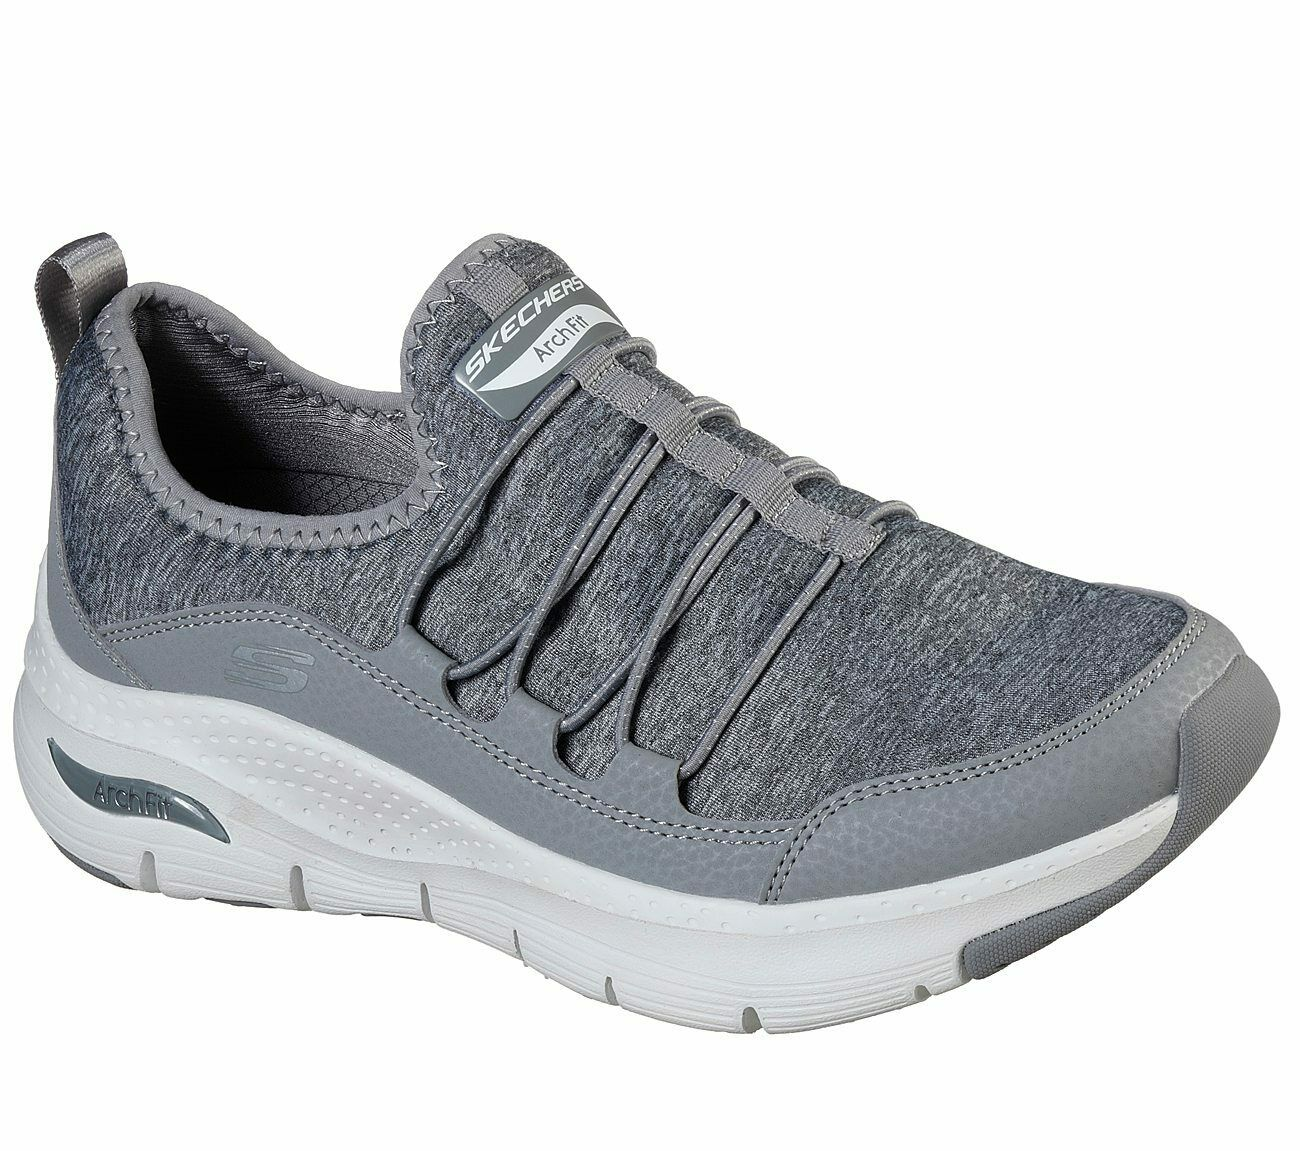 Skechers Womens Arch Fit Trainers